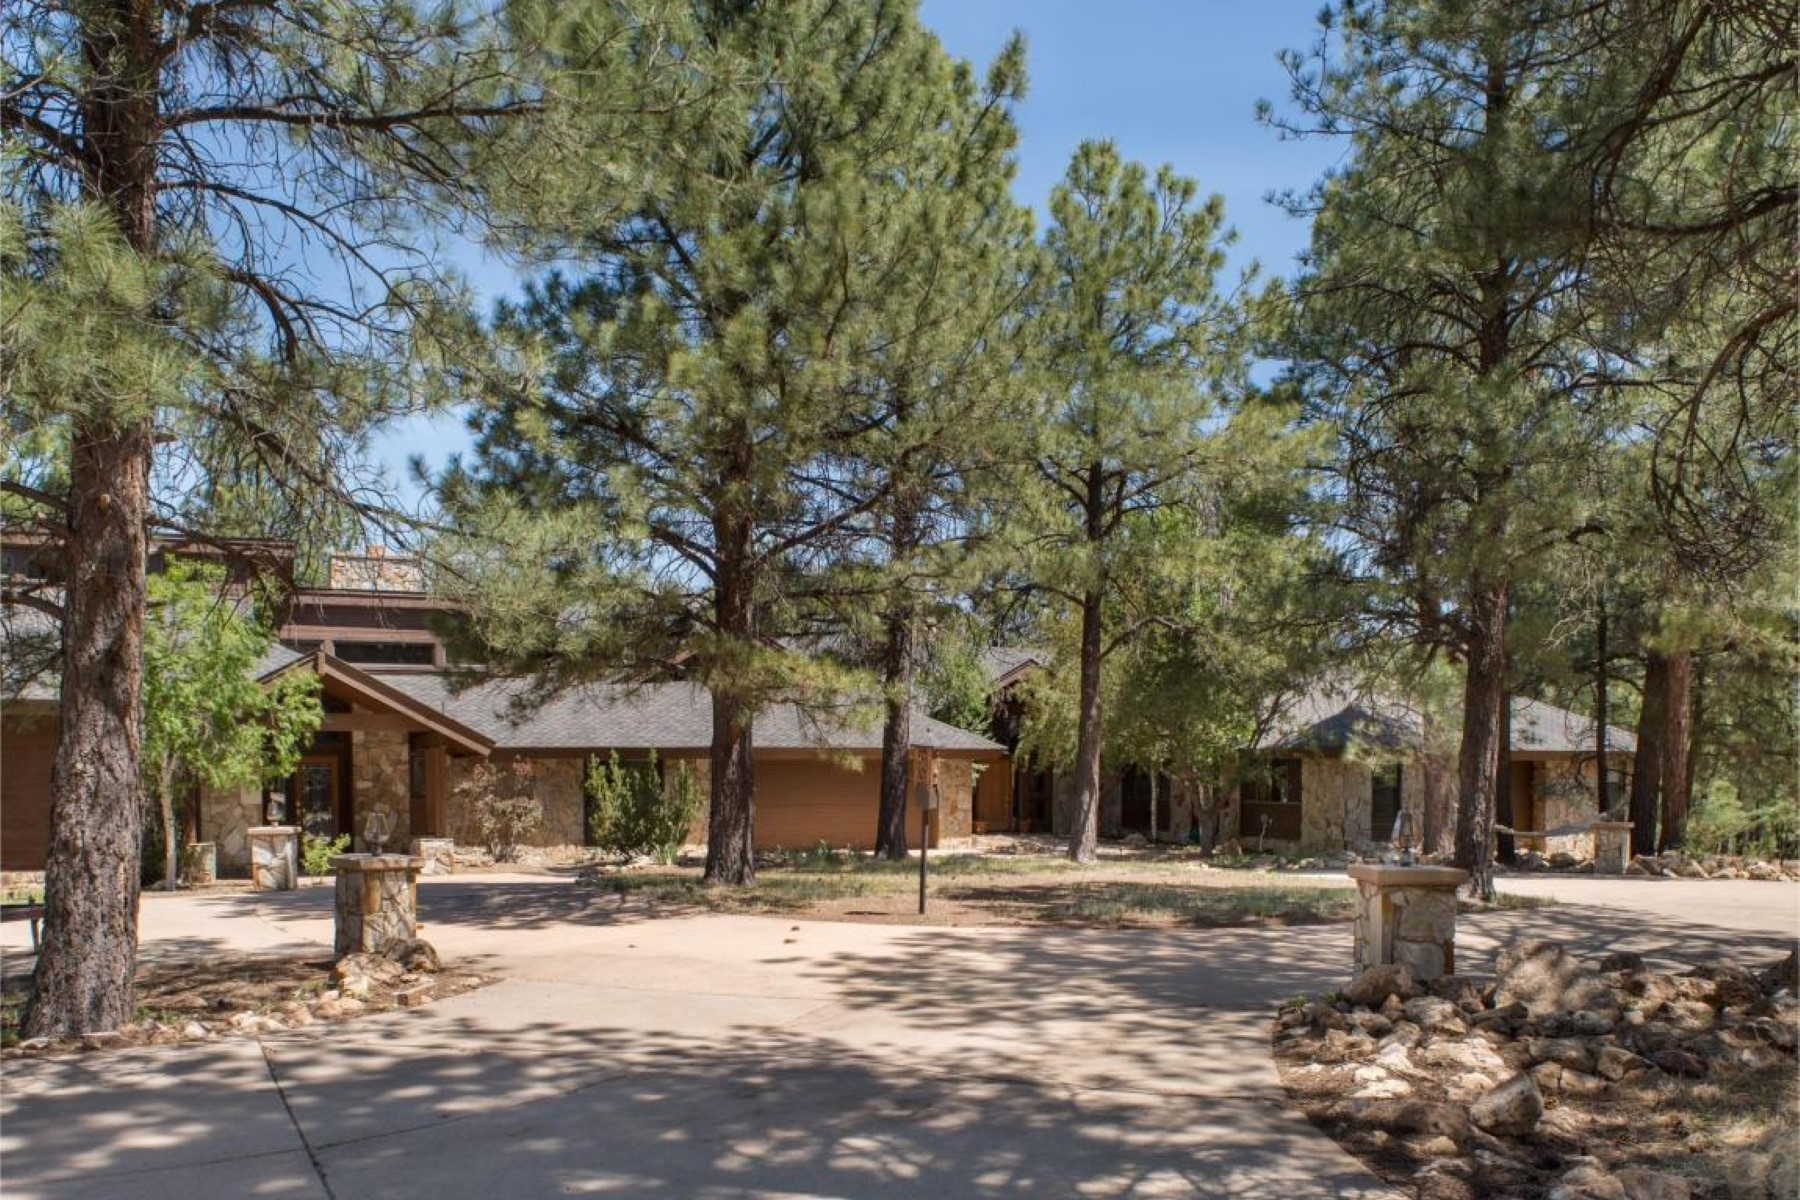 Single Family Home for Sale at Incredible Lakeside Acres Estate 4450 E Green Mountain Dr Flagstaff, Arizona, 86004 United States